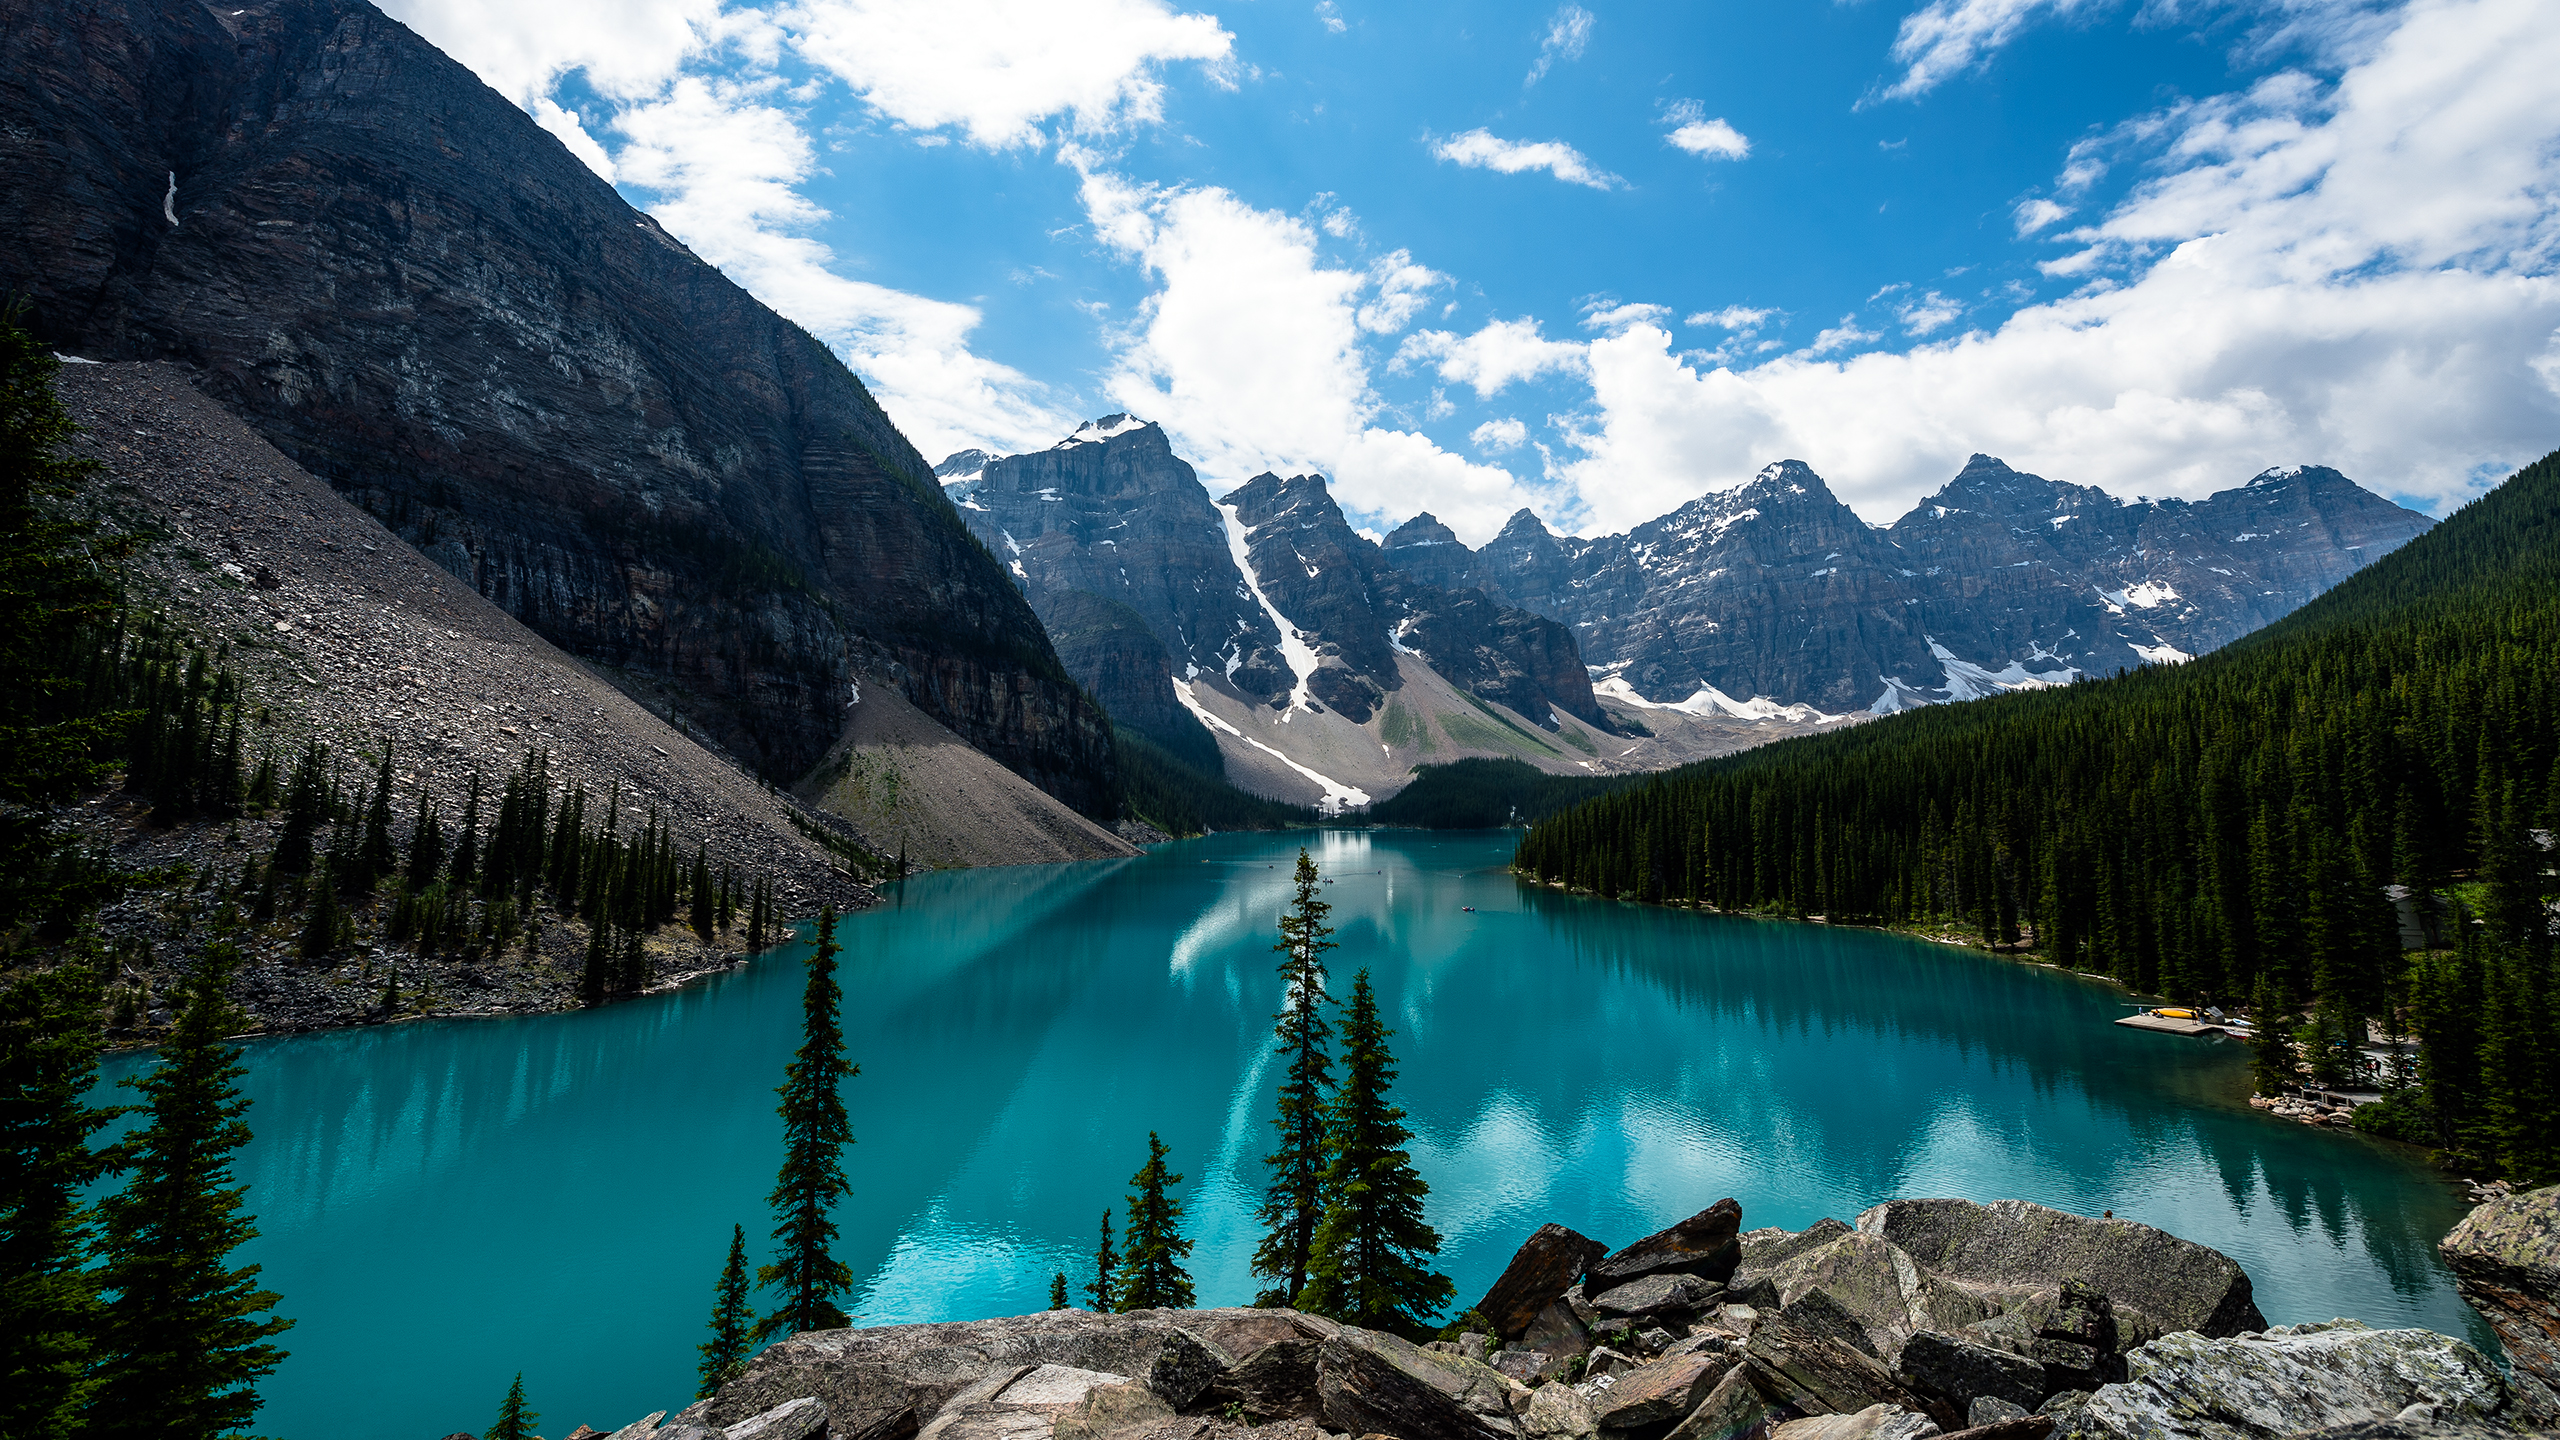 emerald_moraine_lake_2560x1440